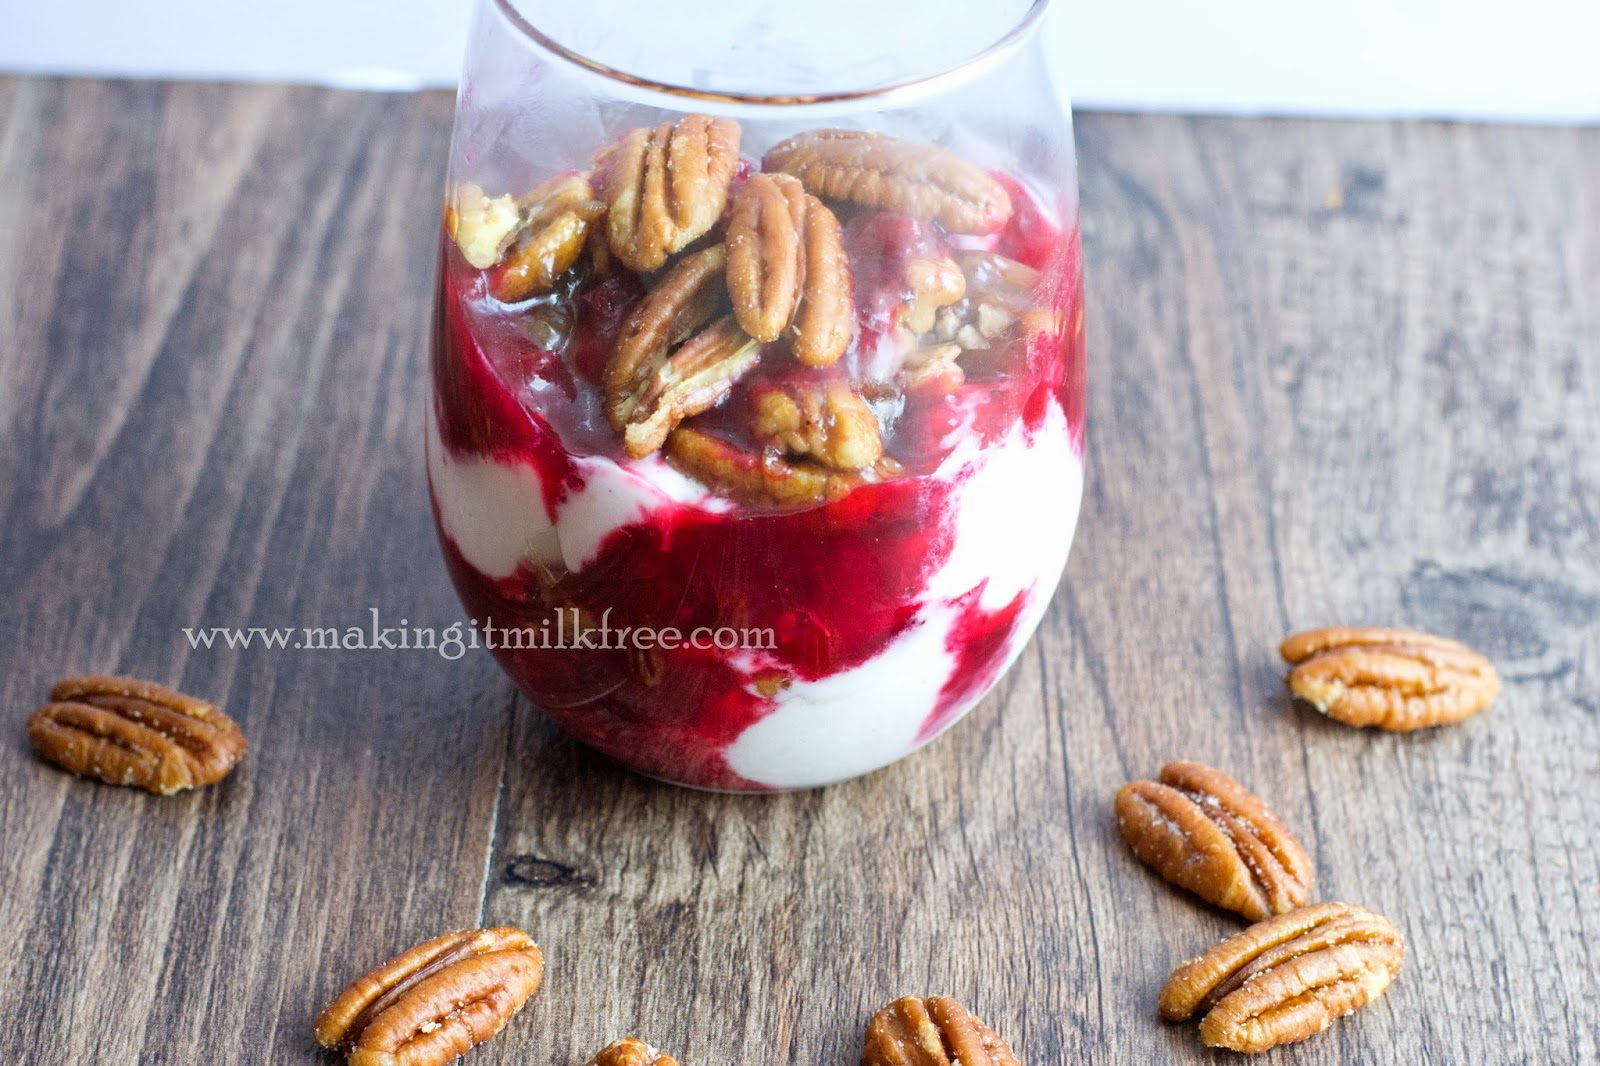 #glutenfree #vegan #dessert #breakfast